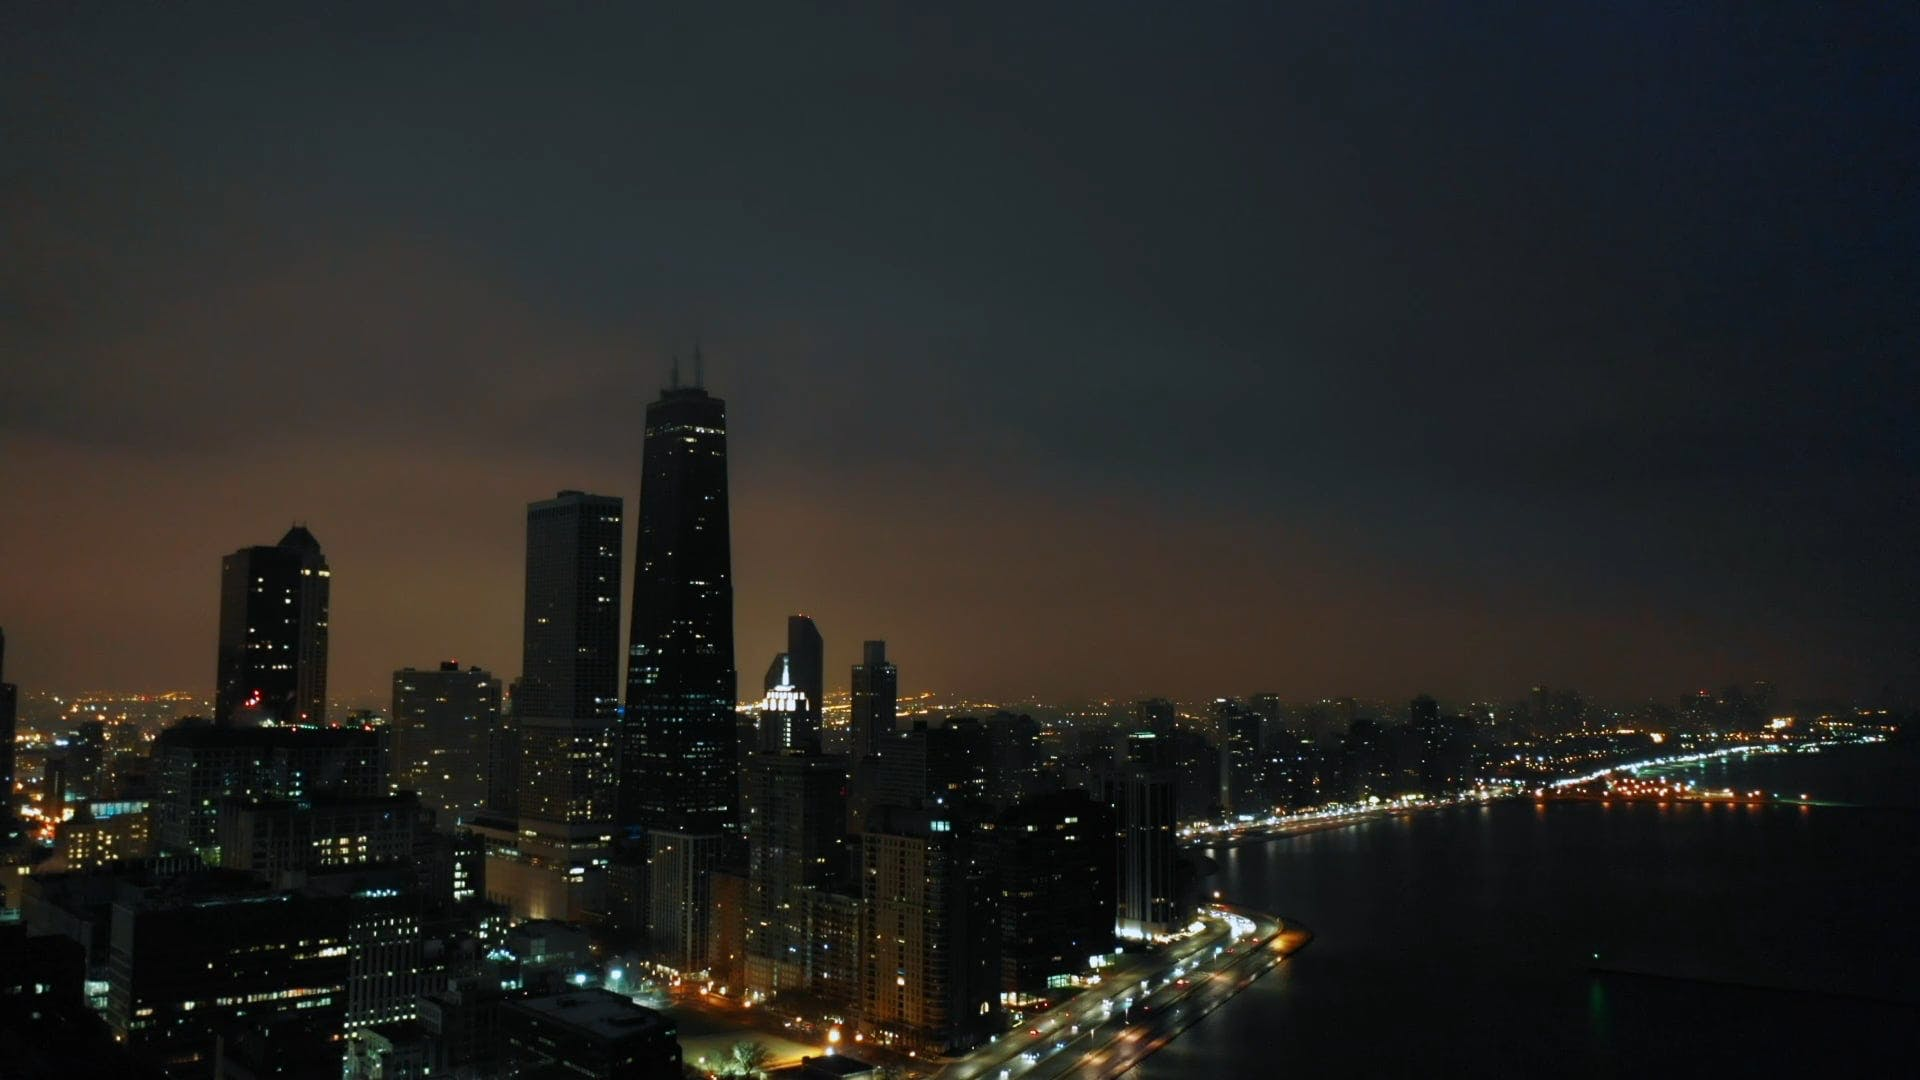 Panoramic View Of A City At Night